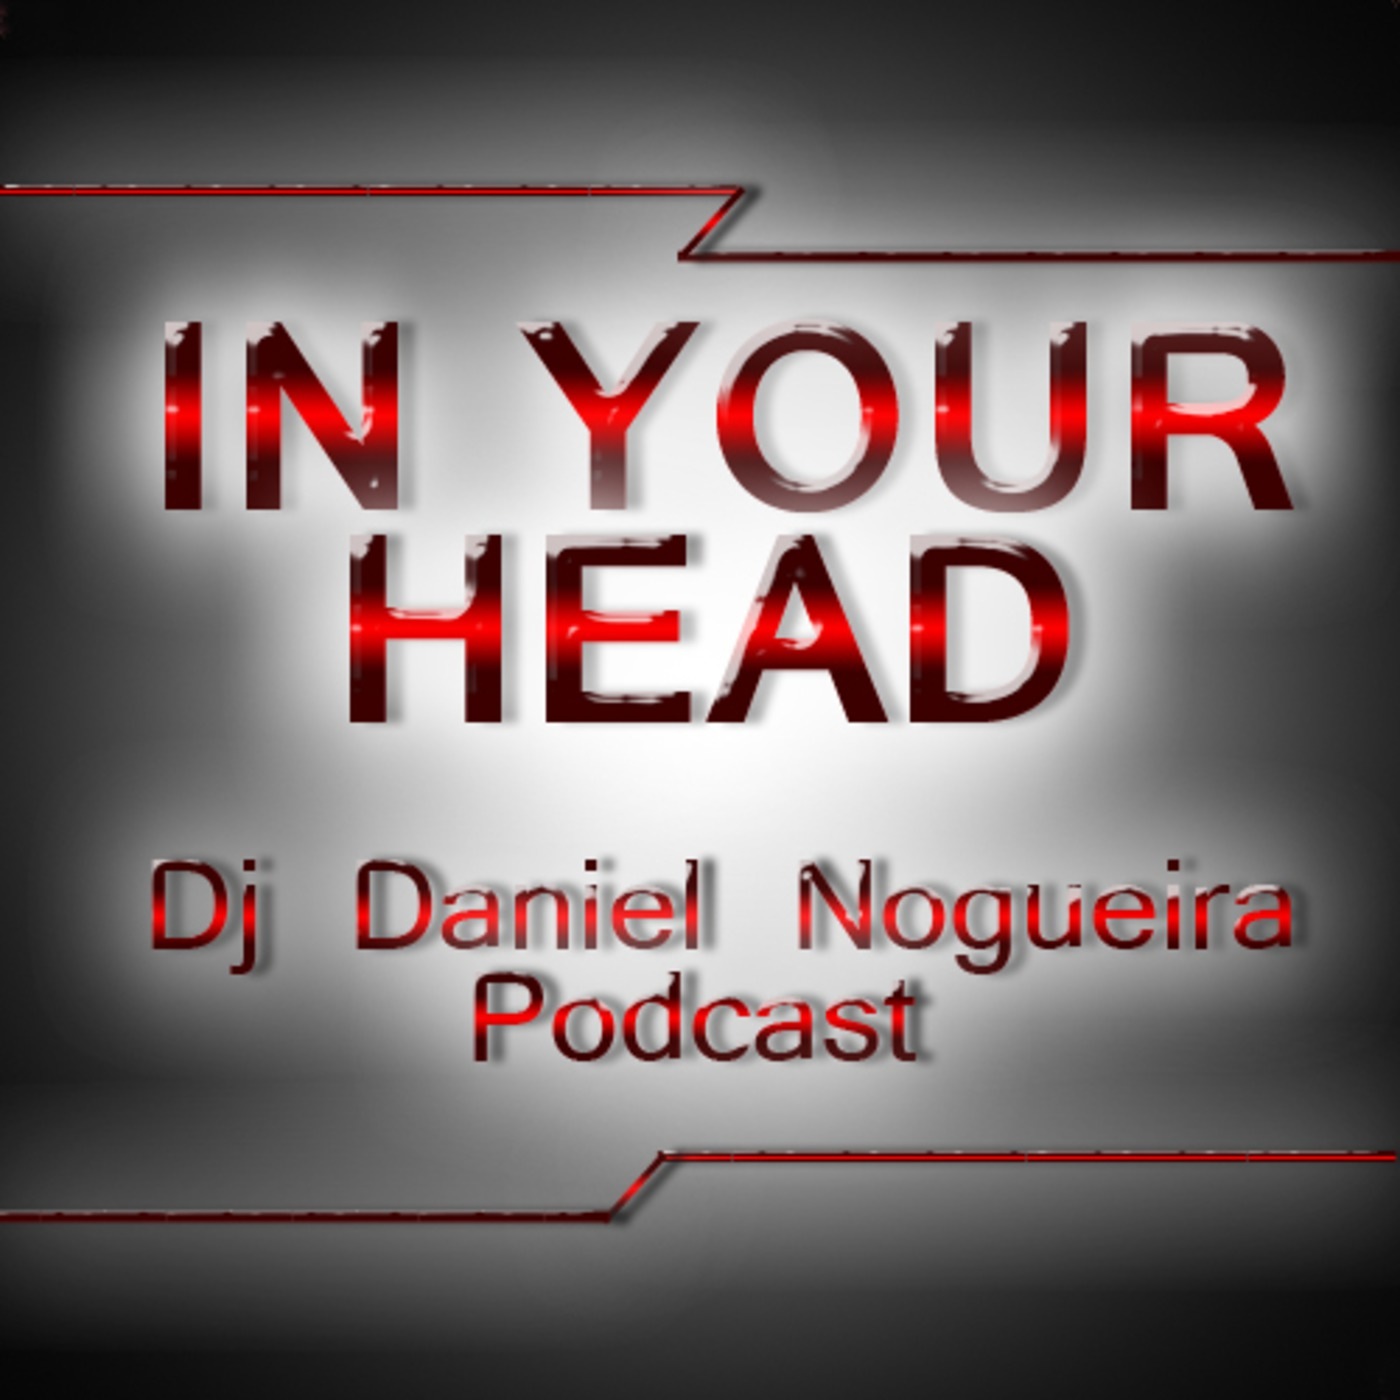 IN YOUR HEAD Podcast